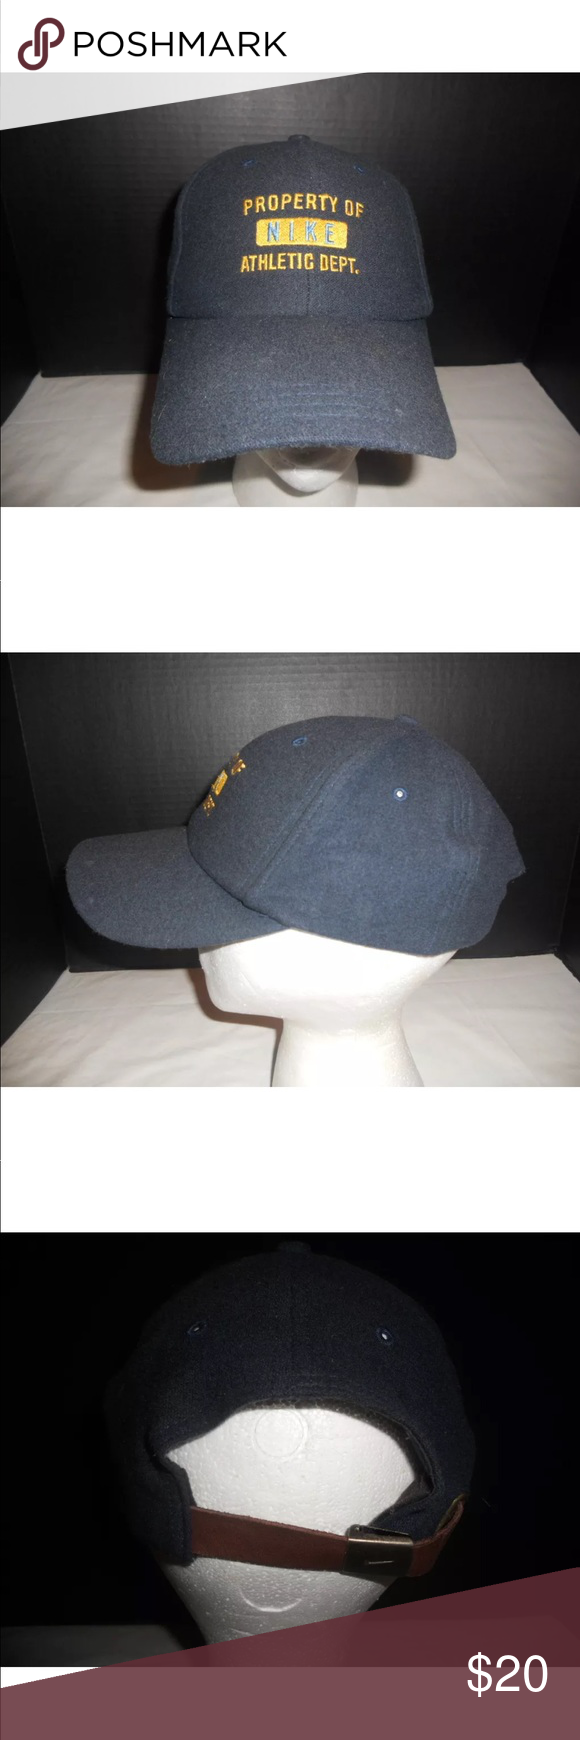 4f765c597 Property of Nike Athletic Dept. Hat Adult One Size Property of Nike ...